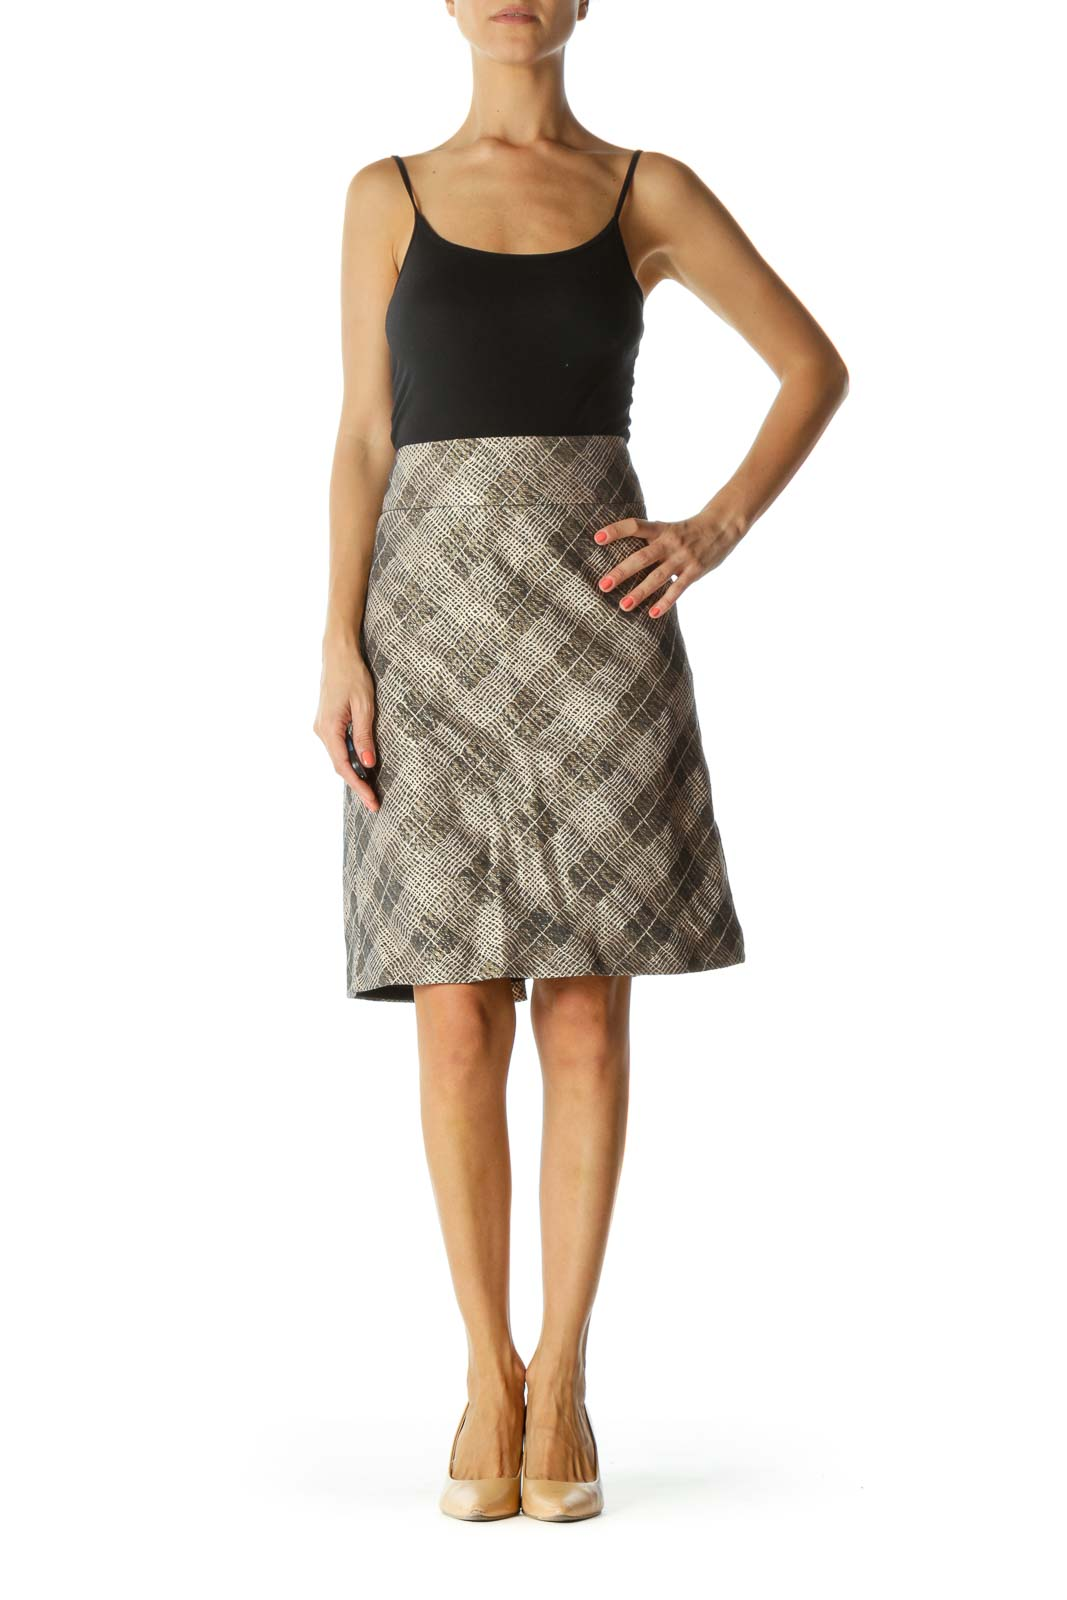 Brown and Cream Pencil Skirt